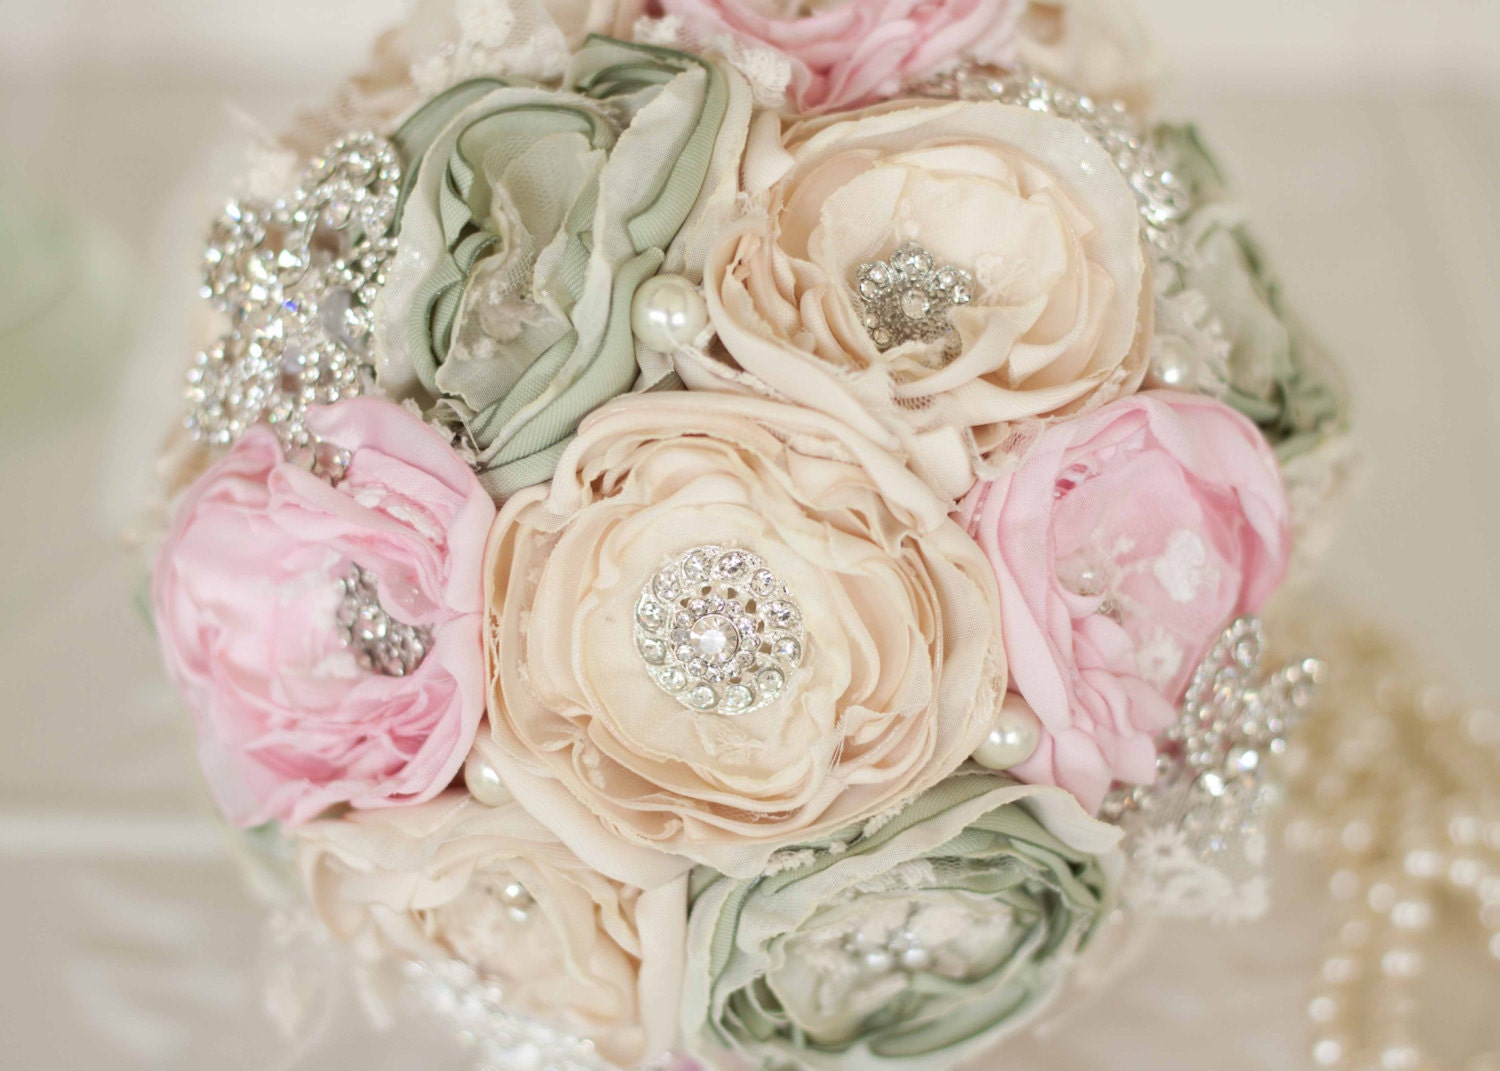 Fabric Flower Bouquet Cream Pale Pink And Green Satin And